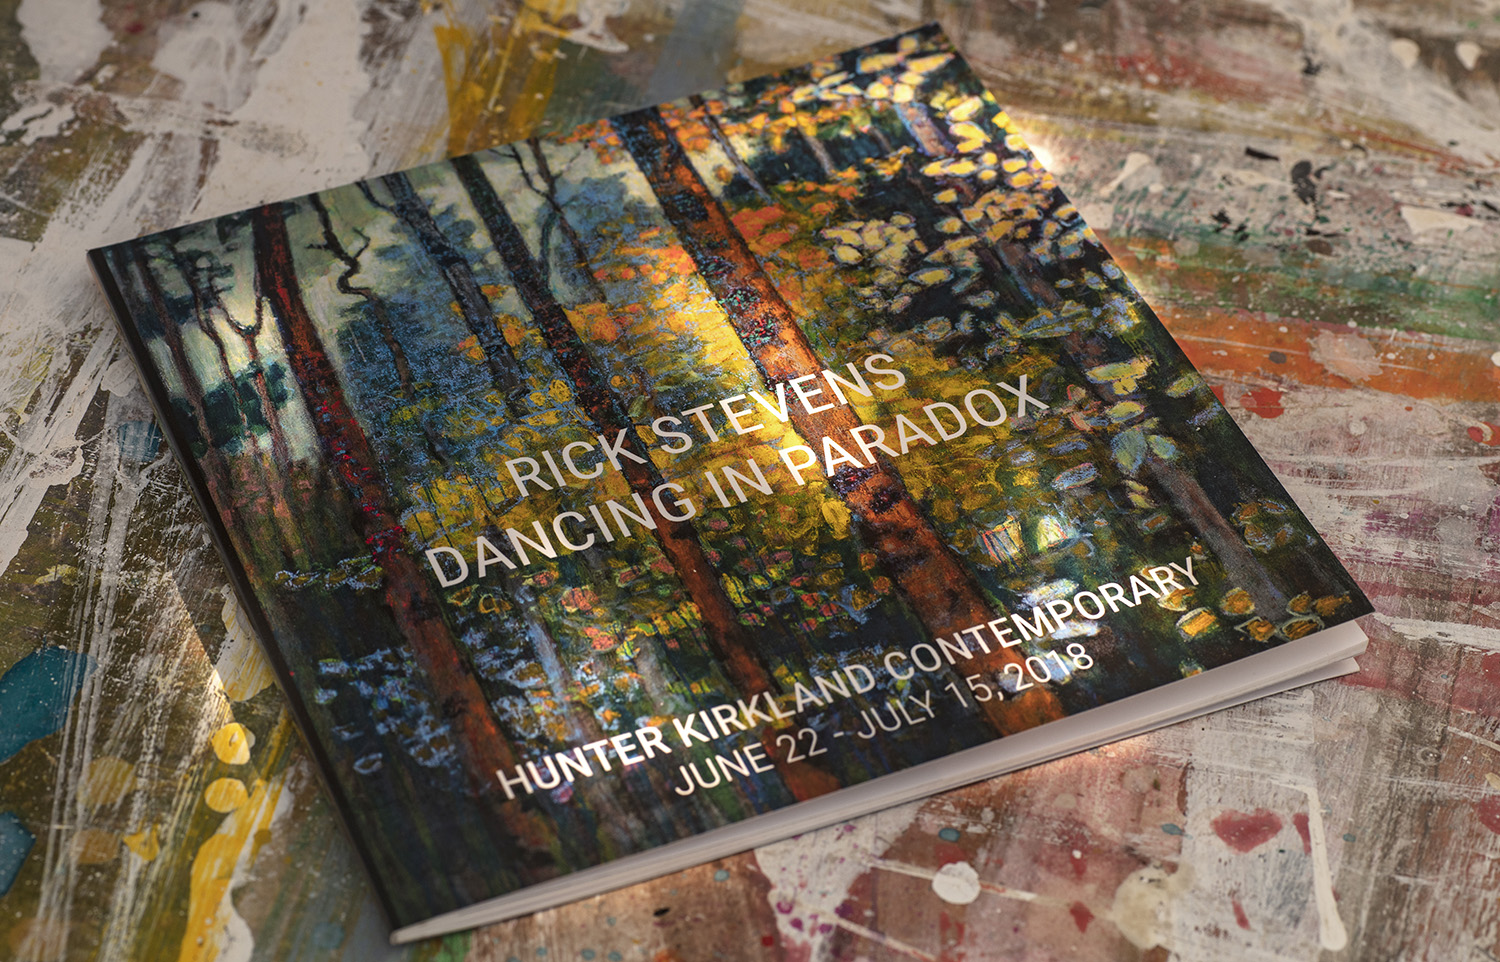 the entire catalog of Rick's upcoming exhibition,  Dancing in Paradox  is now available in print from  blurb.com